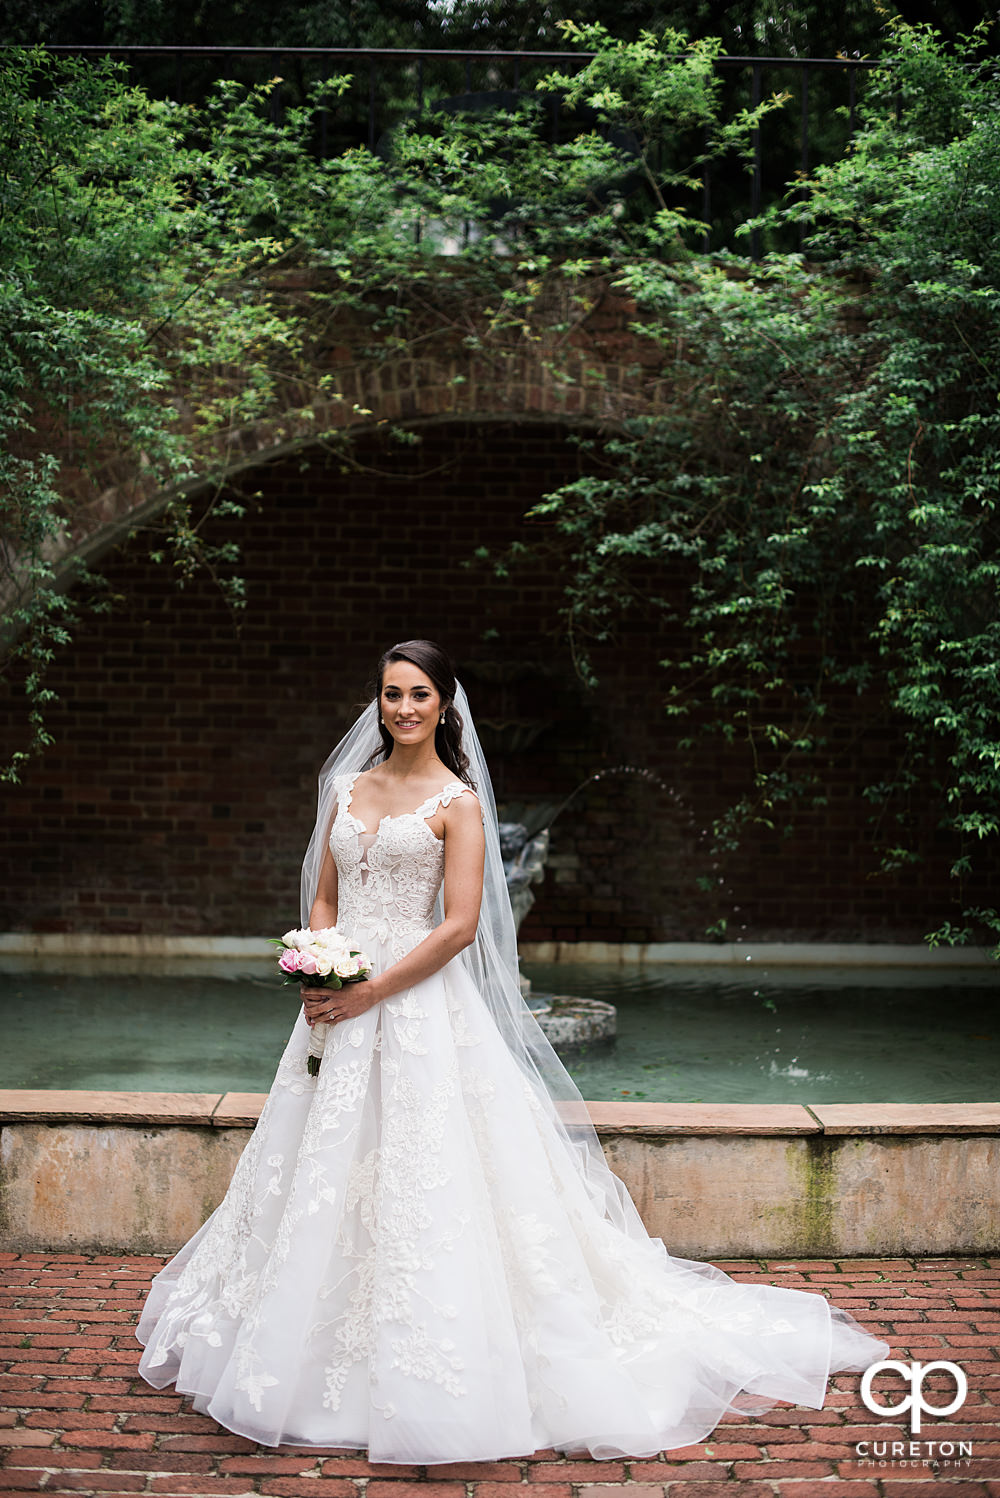 Traditional bridal portrait in Greenville SC on the Furman campus.